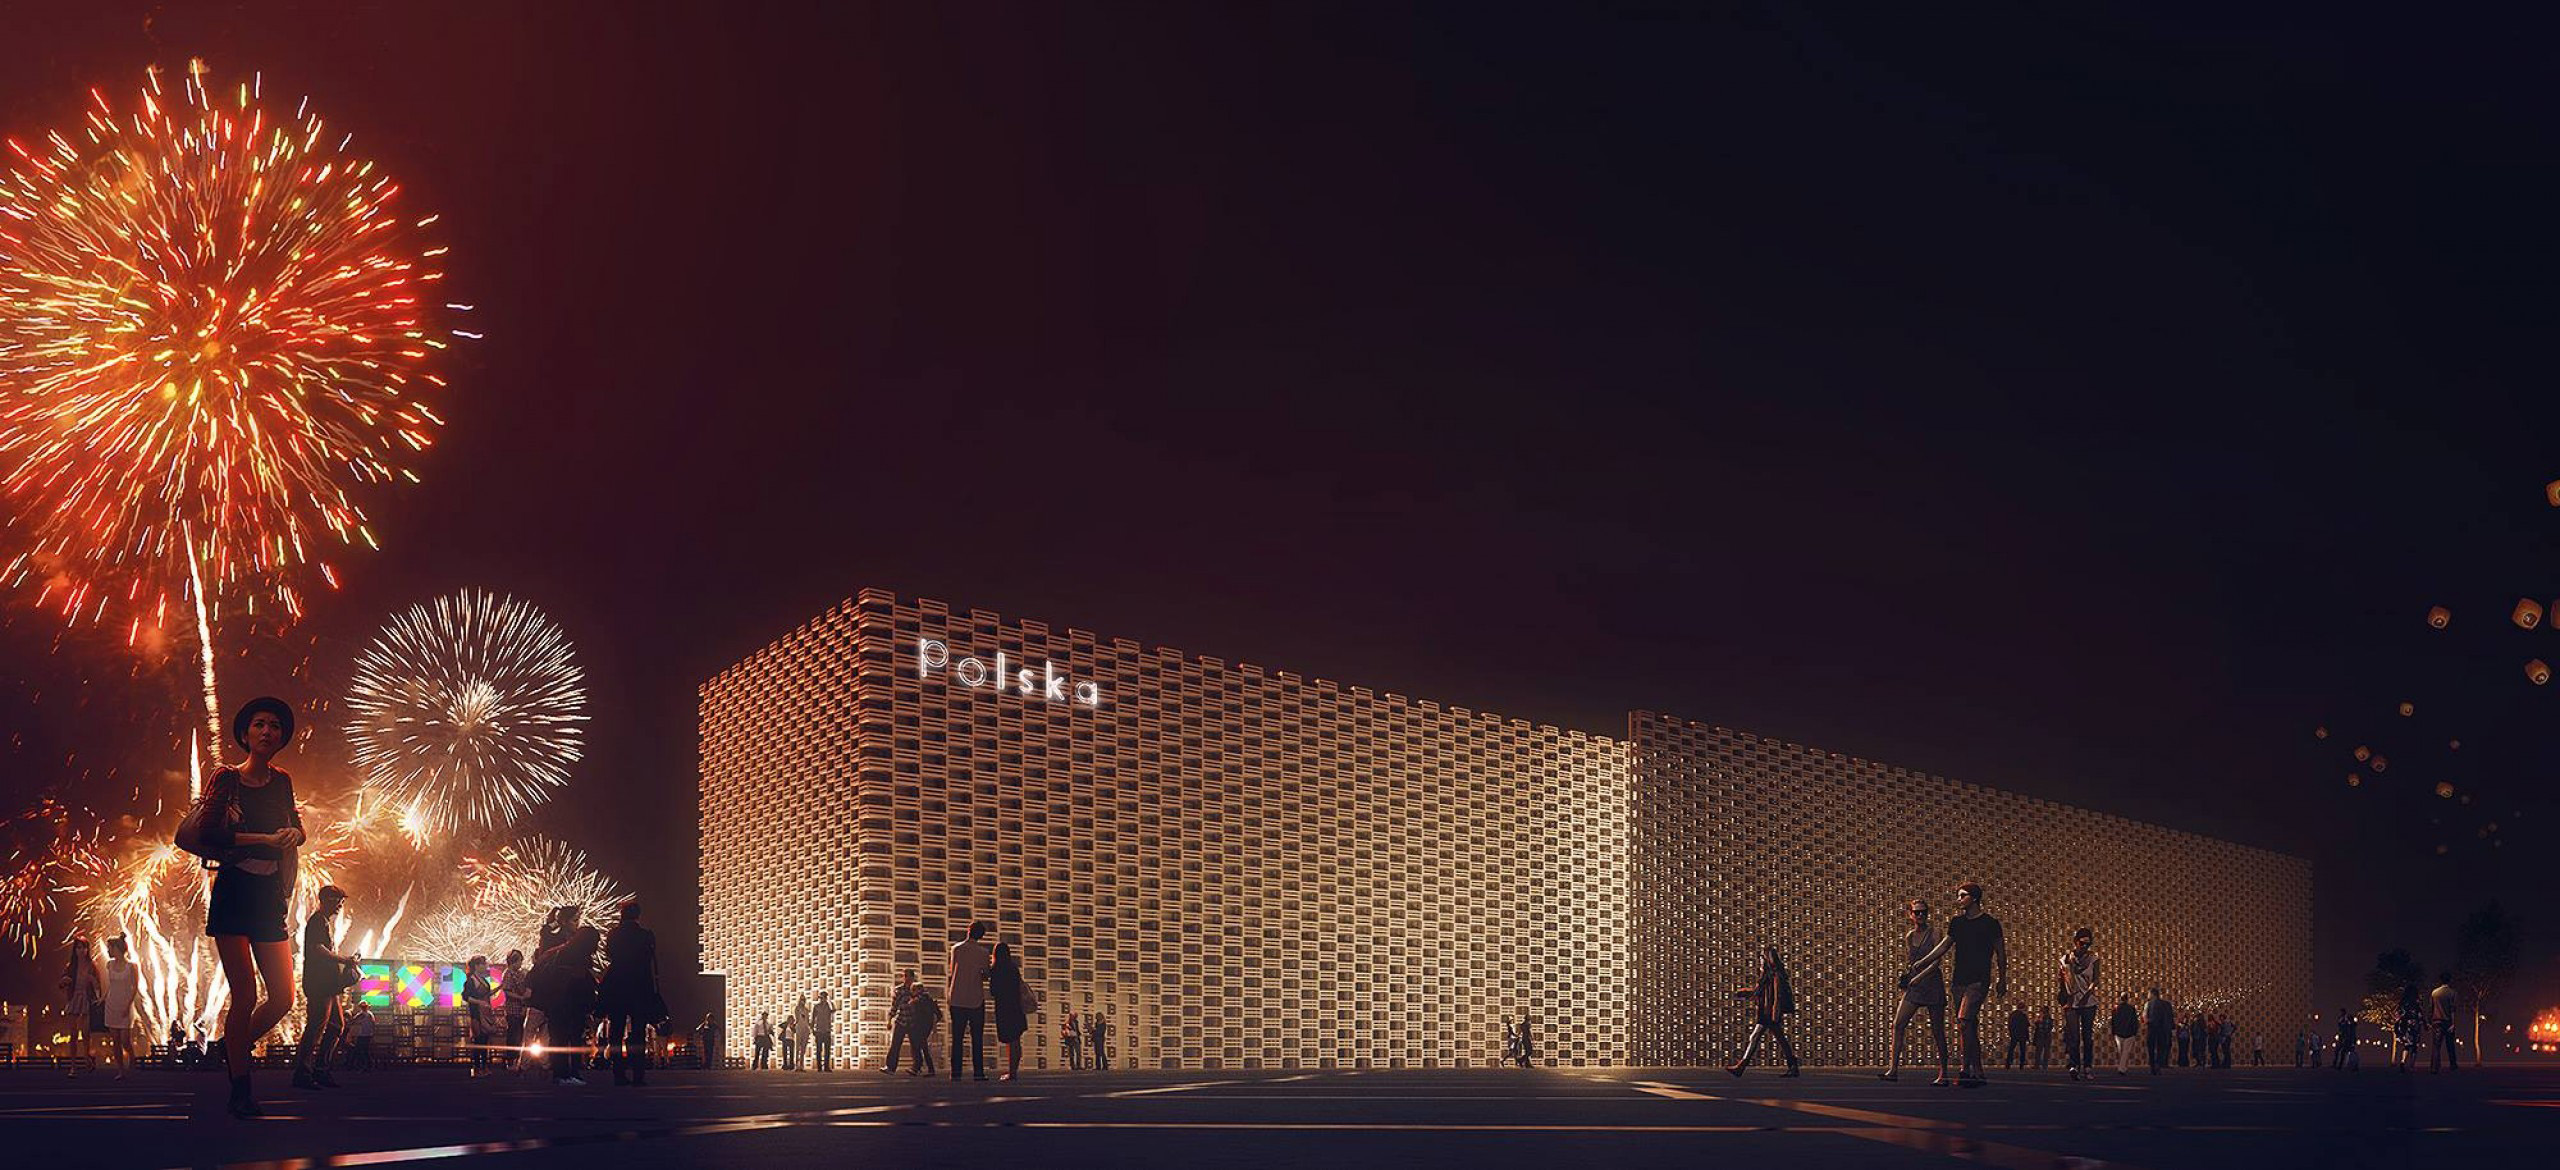 Vivid night rendering of the Polish Pavilion: wooden pattern building, red fireworks in the sky, EXPO Milano 2015